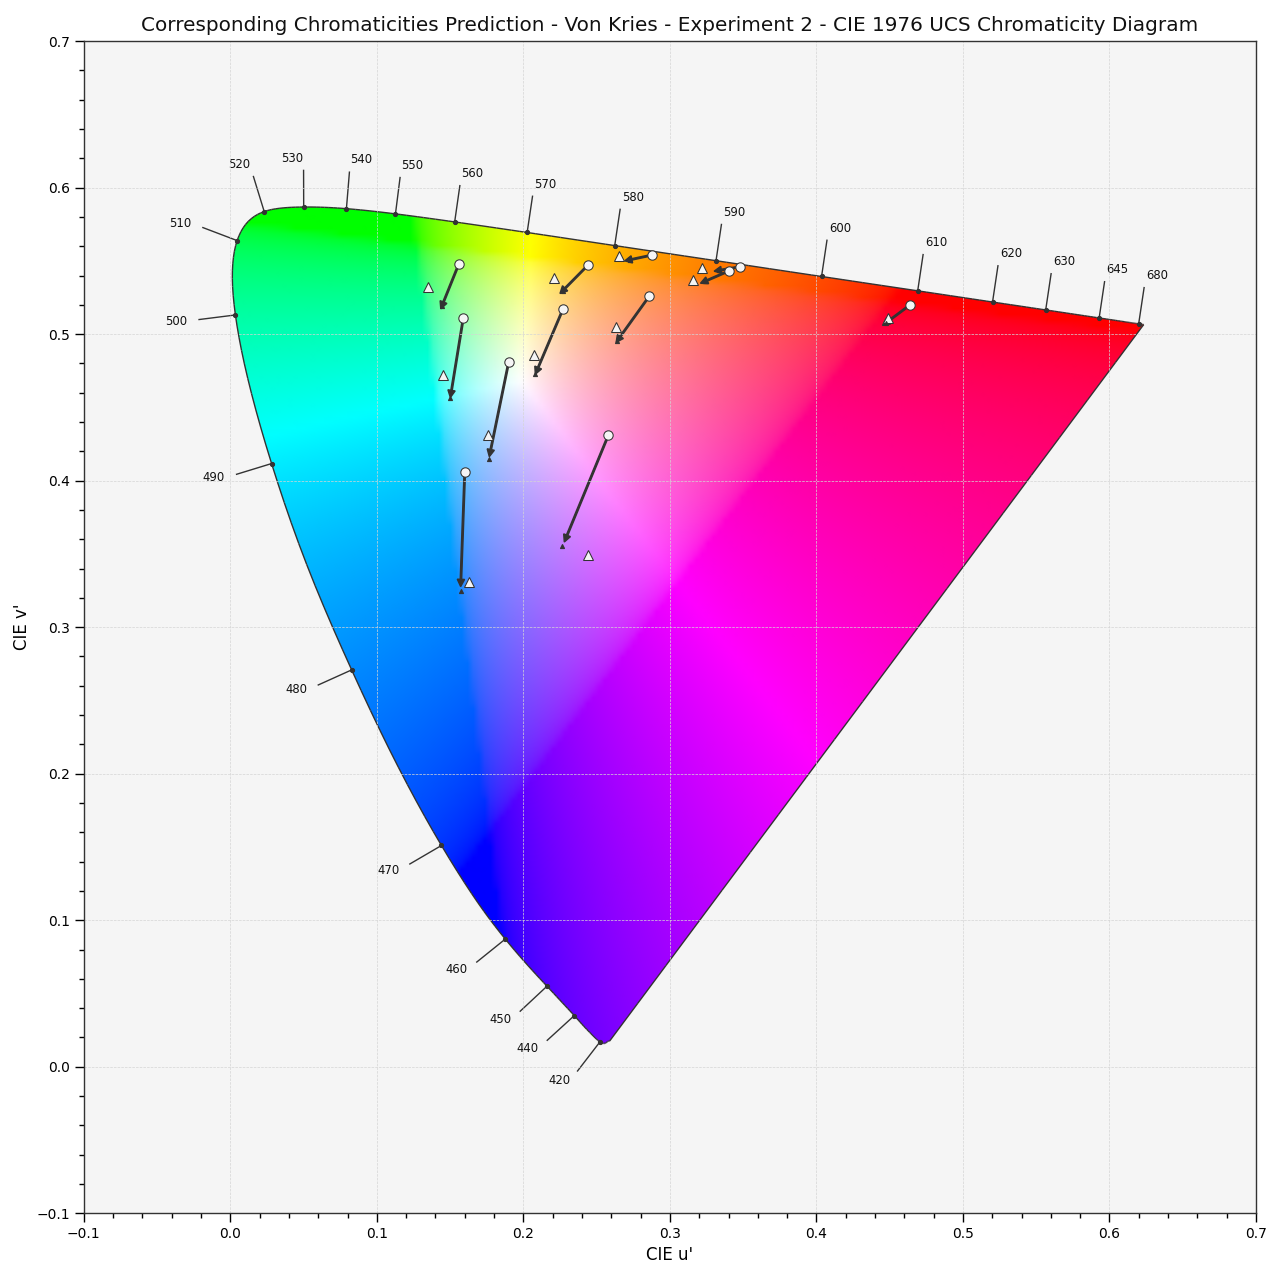 https://colour.readthedocs.io/en/develop/_static/Examples_Plotting_Chromaticities_Prediction.png